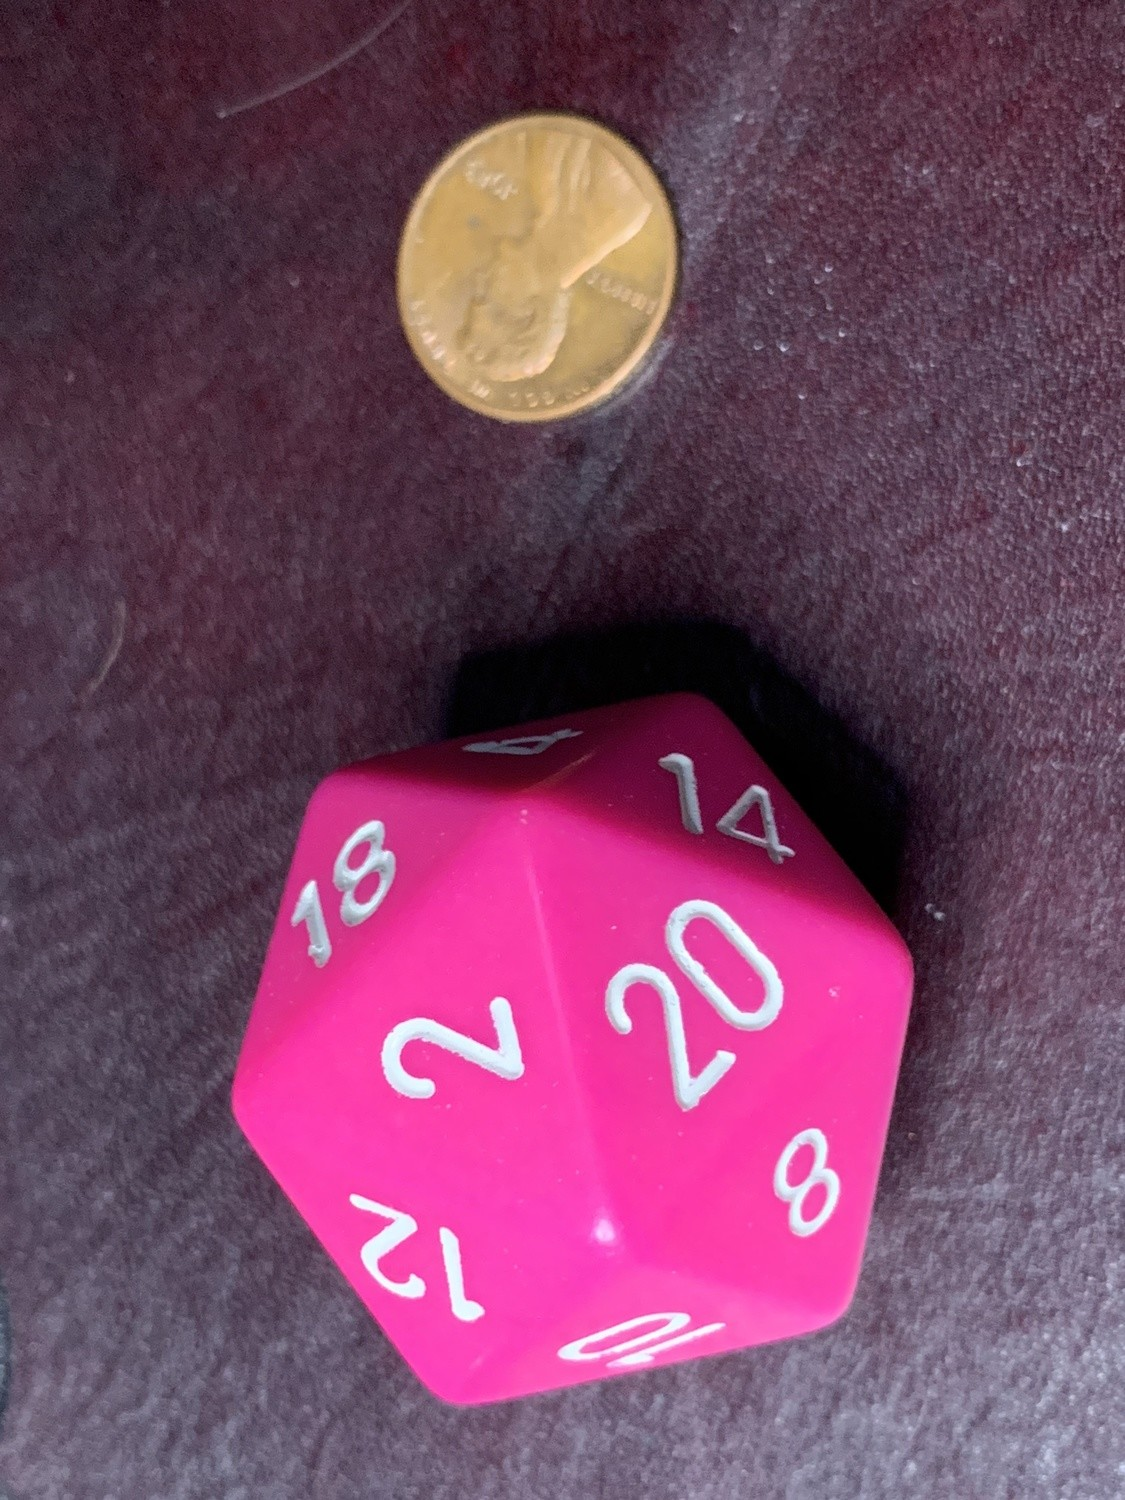 Jumbo 34mm D20 Pink with White Extra Large Counter Dice